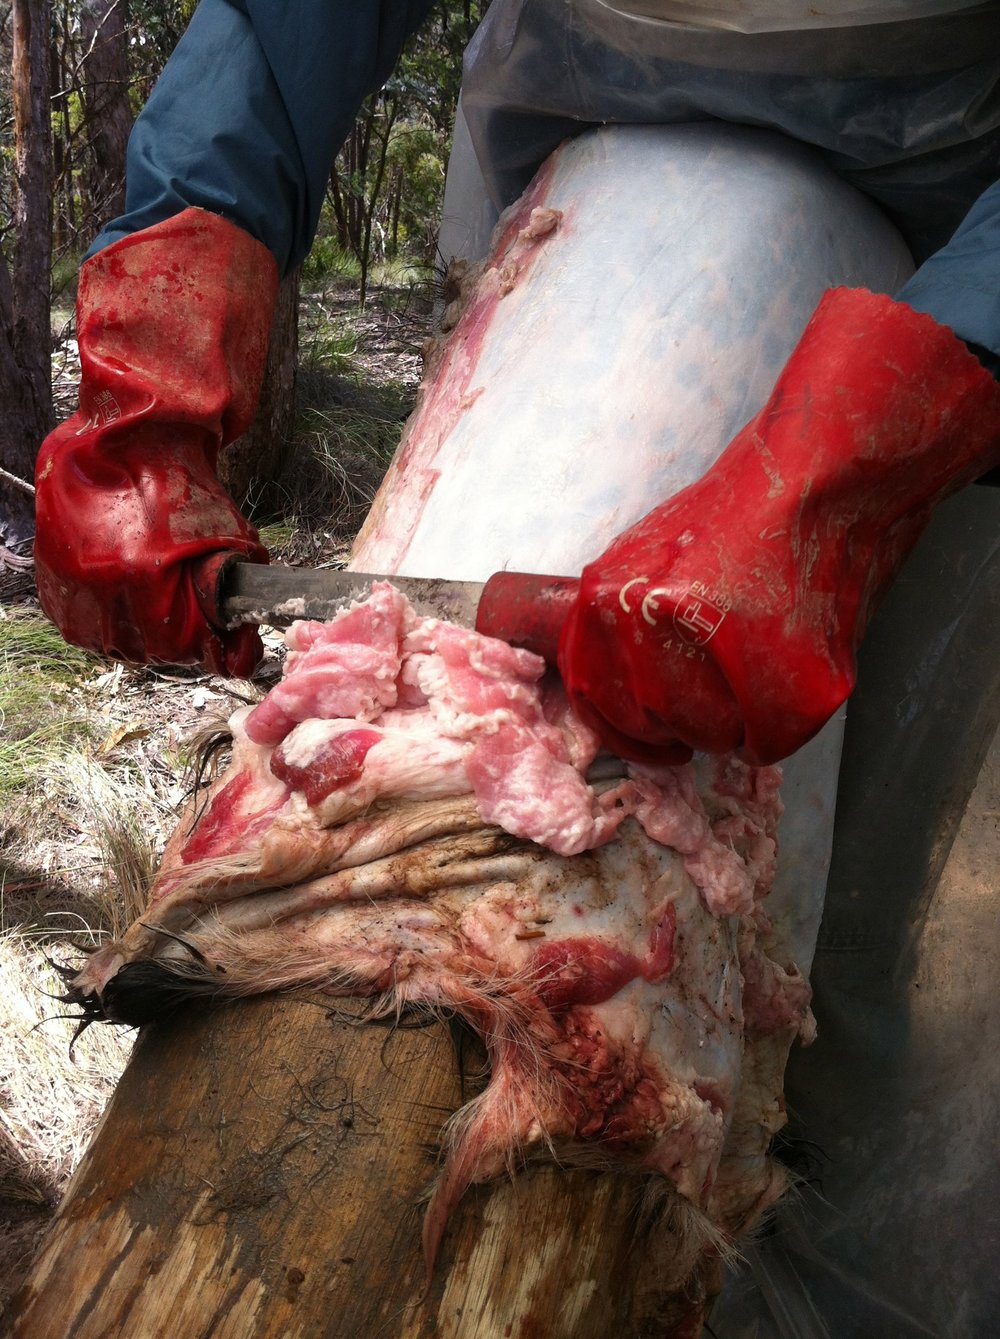 Pictured: A participant in a recent workshop wearing sturdy gloves to protect any open cuts as they remove the flesh off of a goat hide.